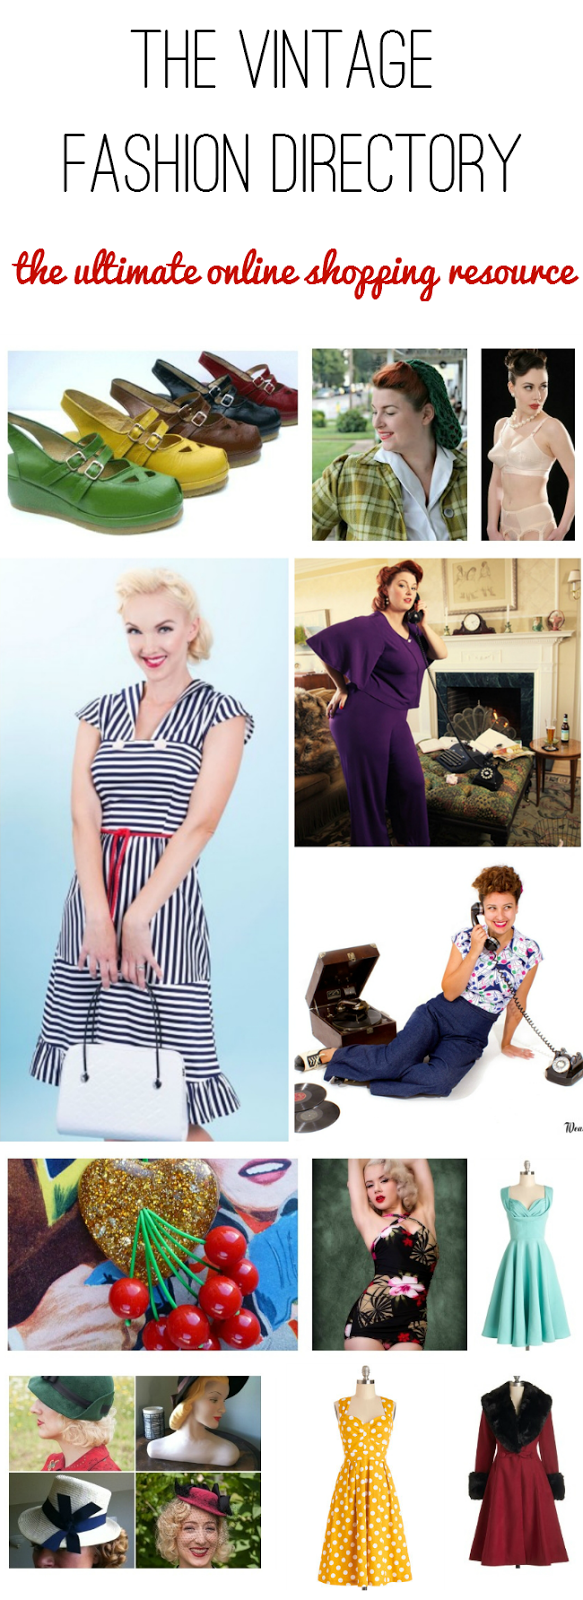 the vintage fashion directory the ultimate online shopping resource for retro style clothes